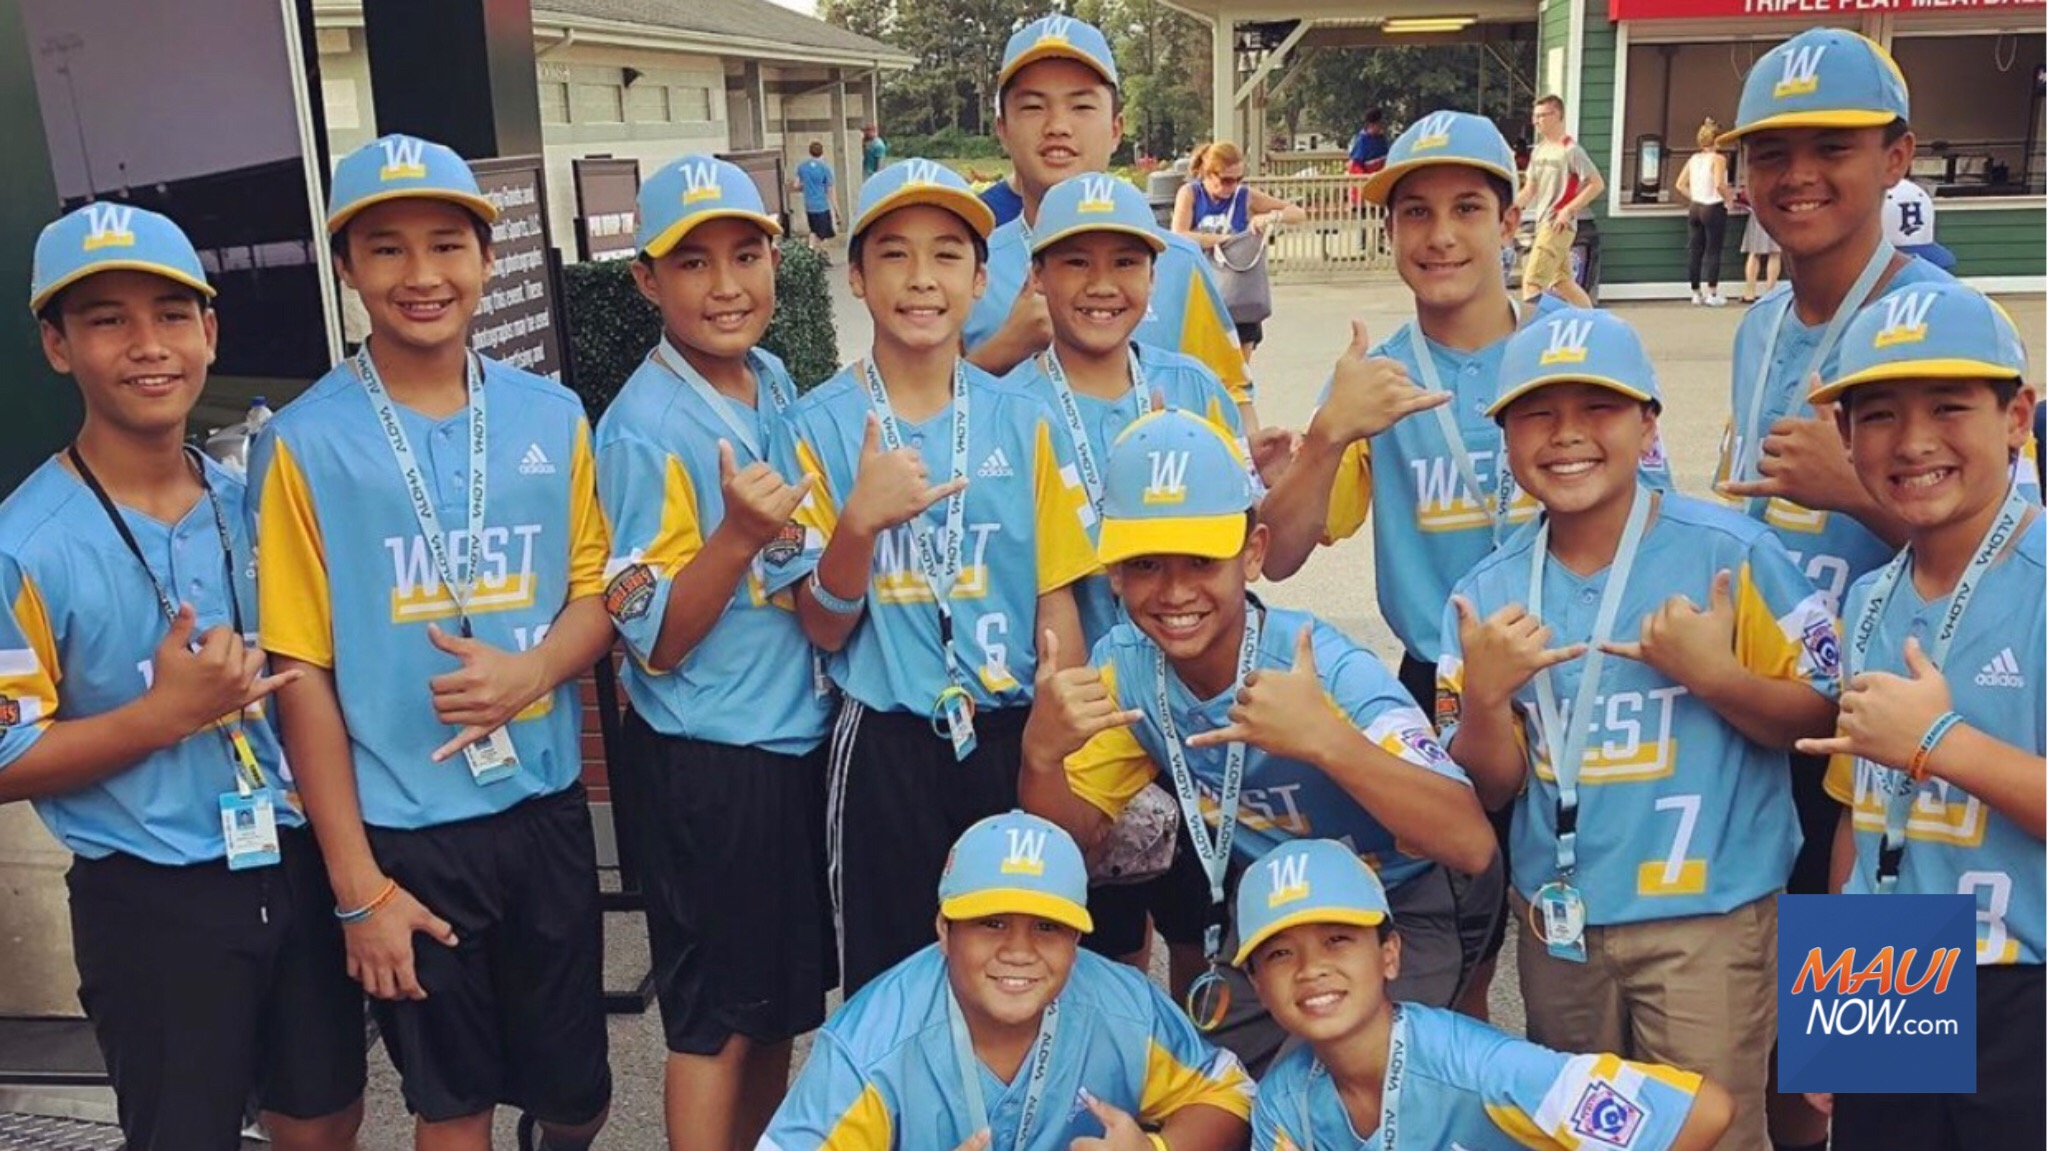 Celebration to Honor Maui Youth Baseball Teams, Sept. 6